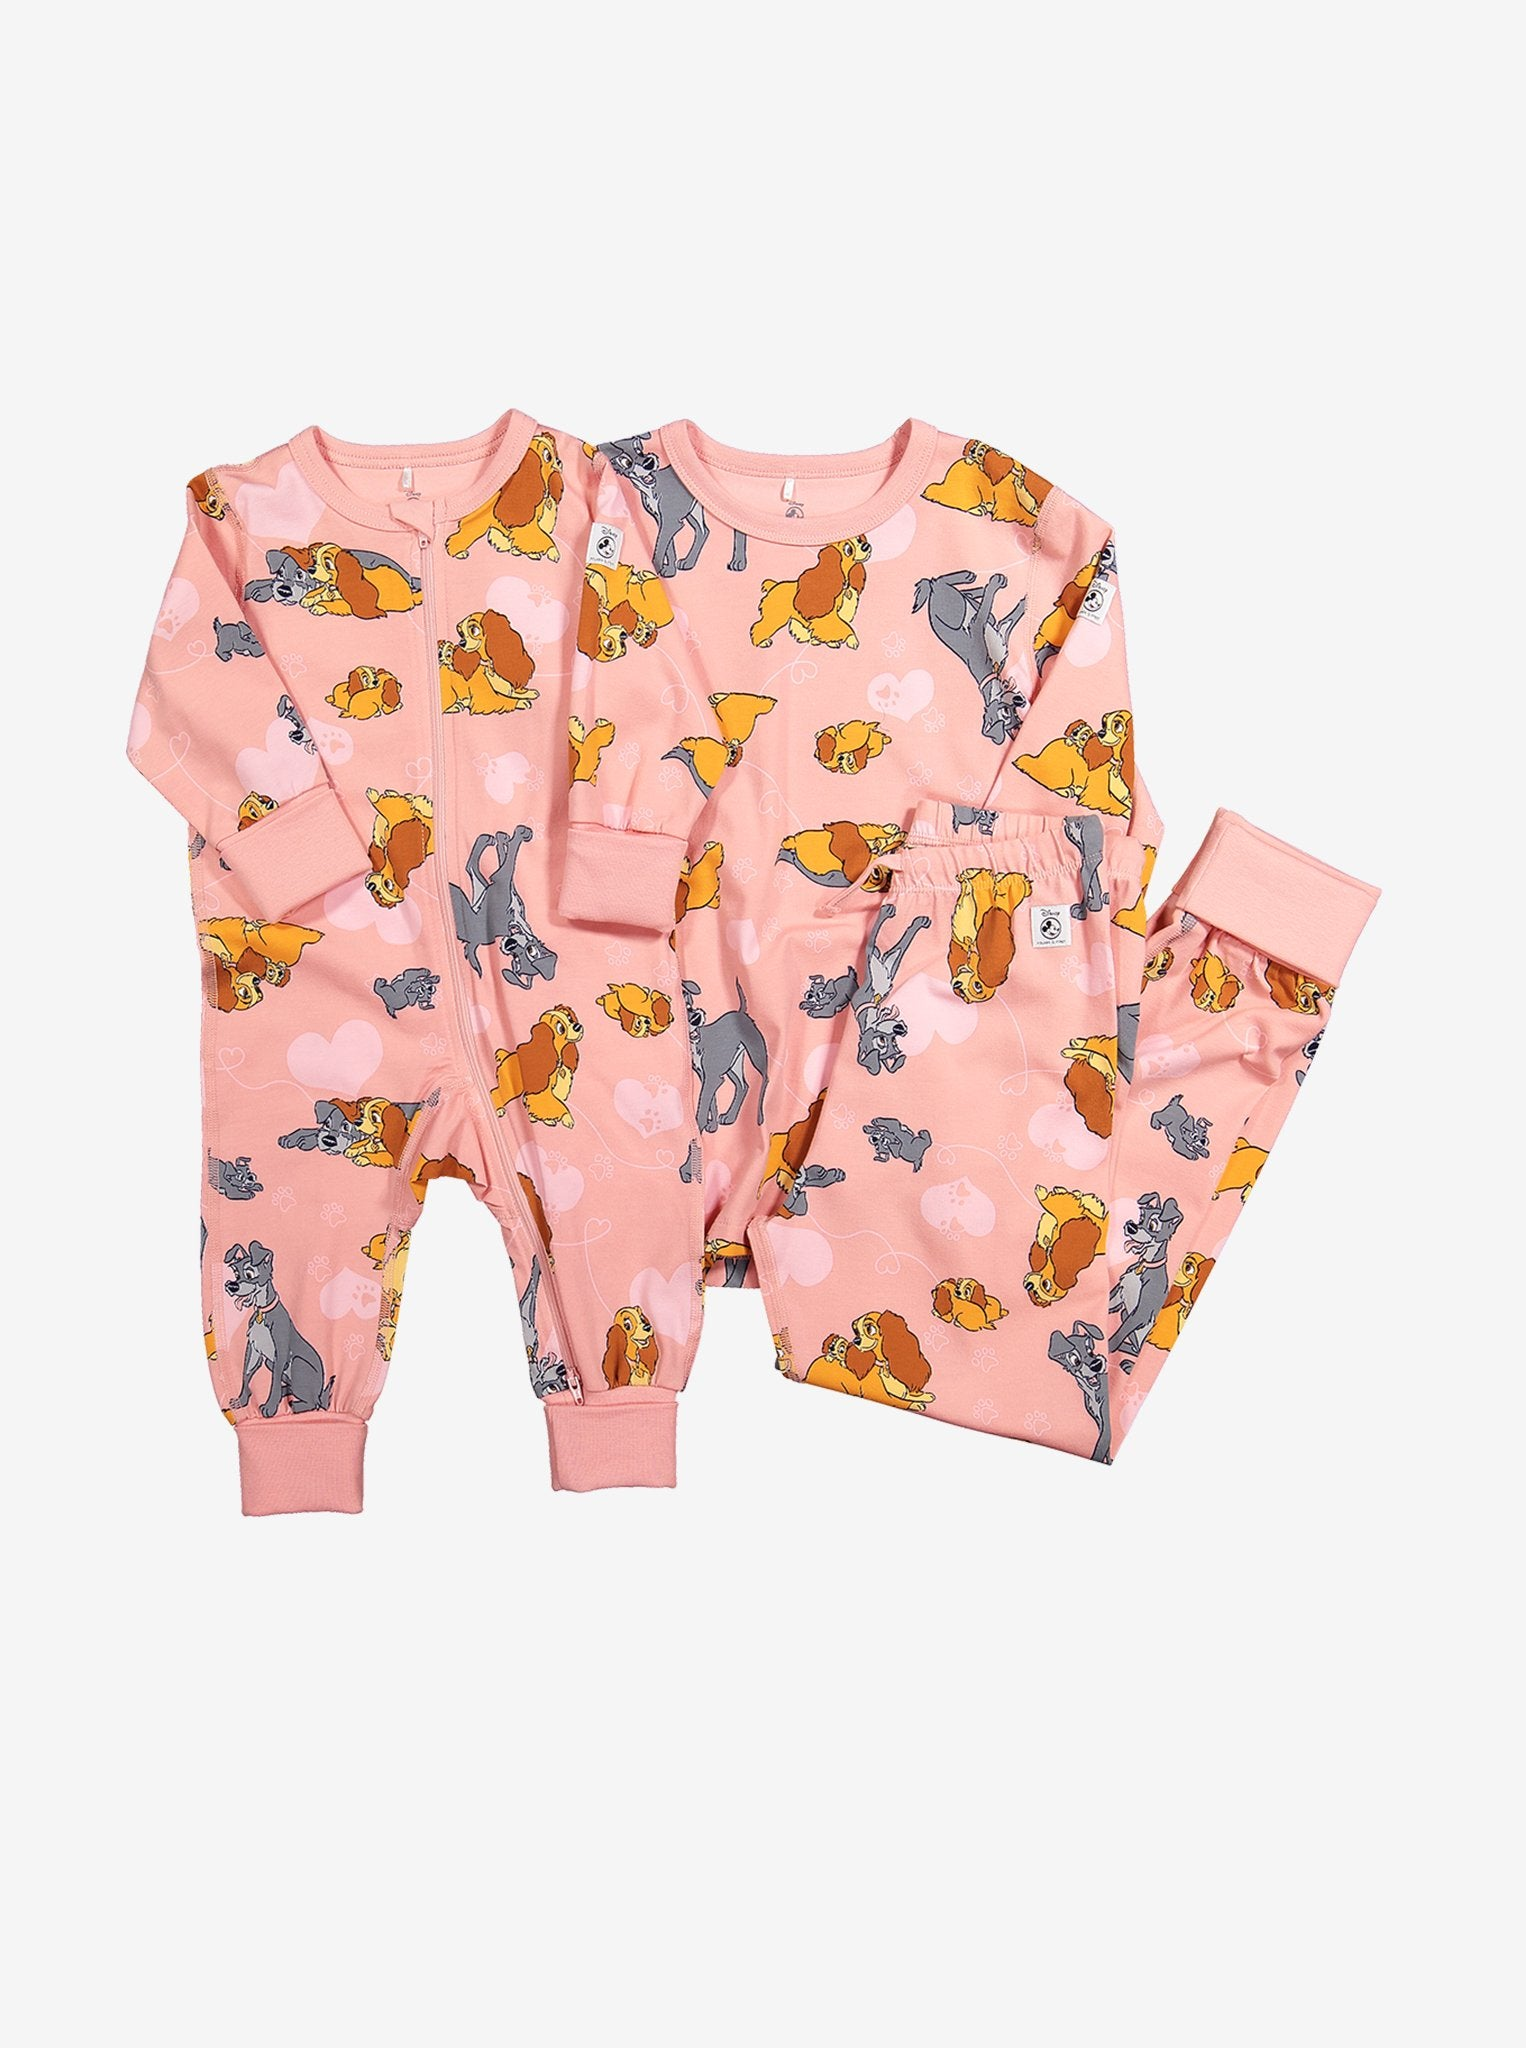 Lady & The Tramp Kids Pyjamas